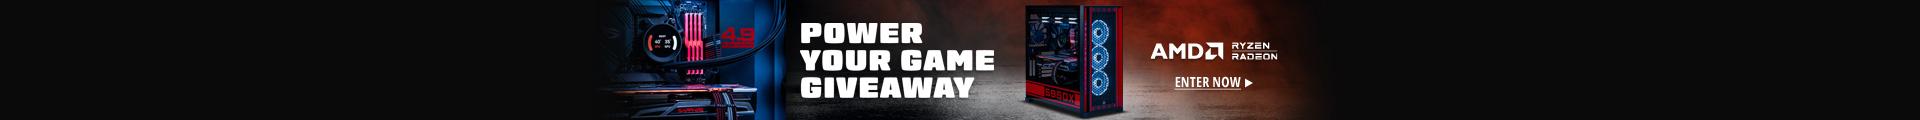 POWER YOUR GAME GIVEAWAY